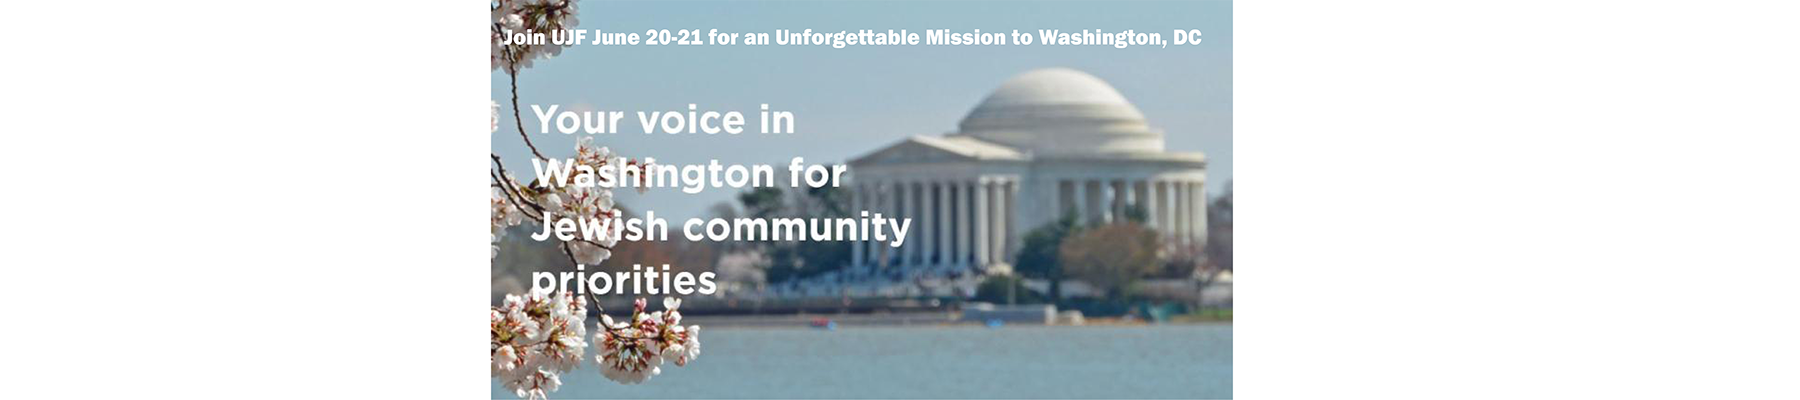 DC-Mission-for-homepage-scroll.png